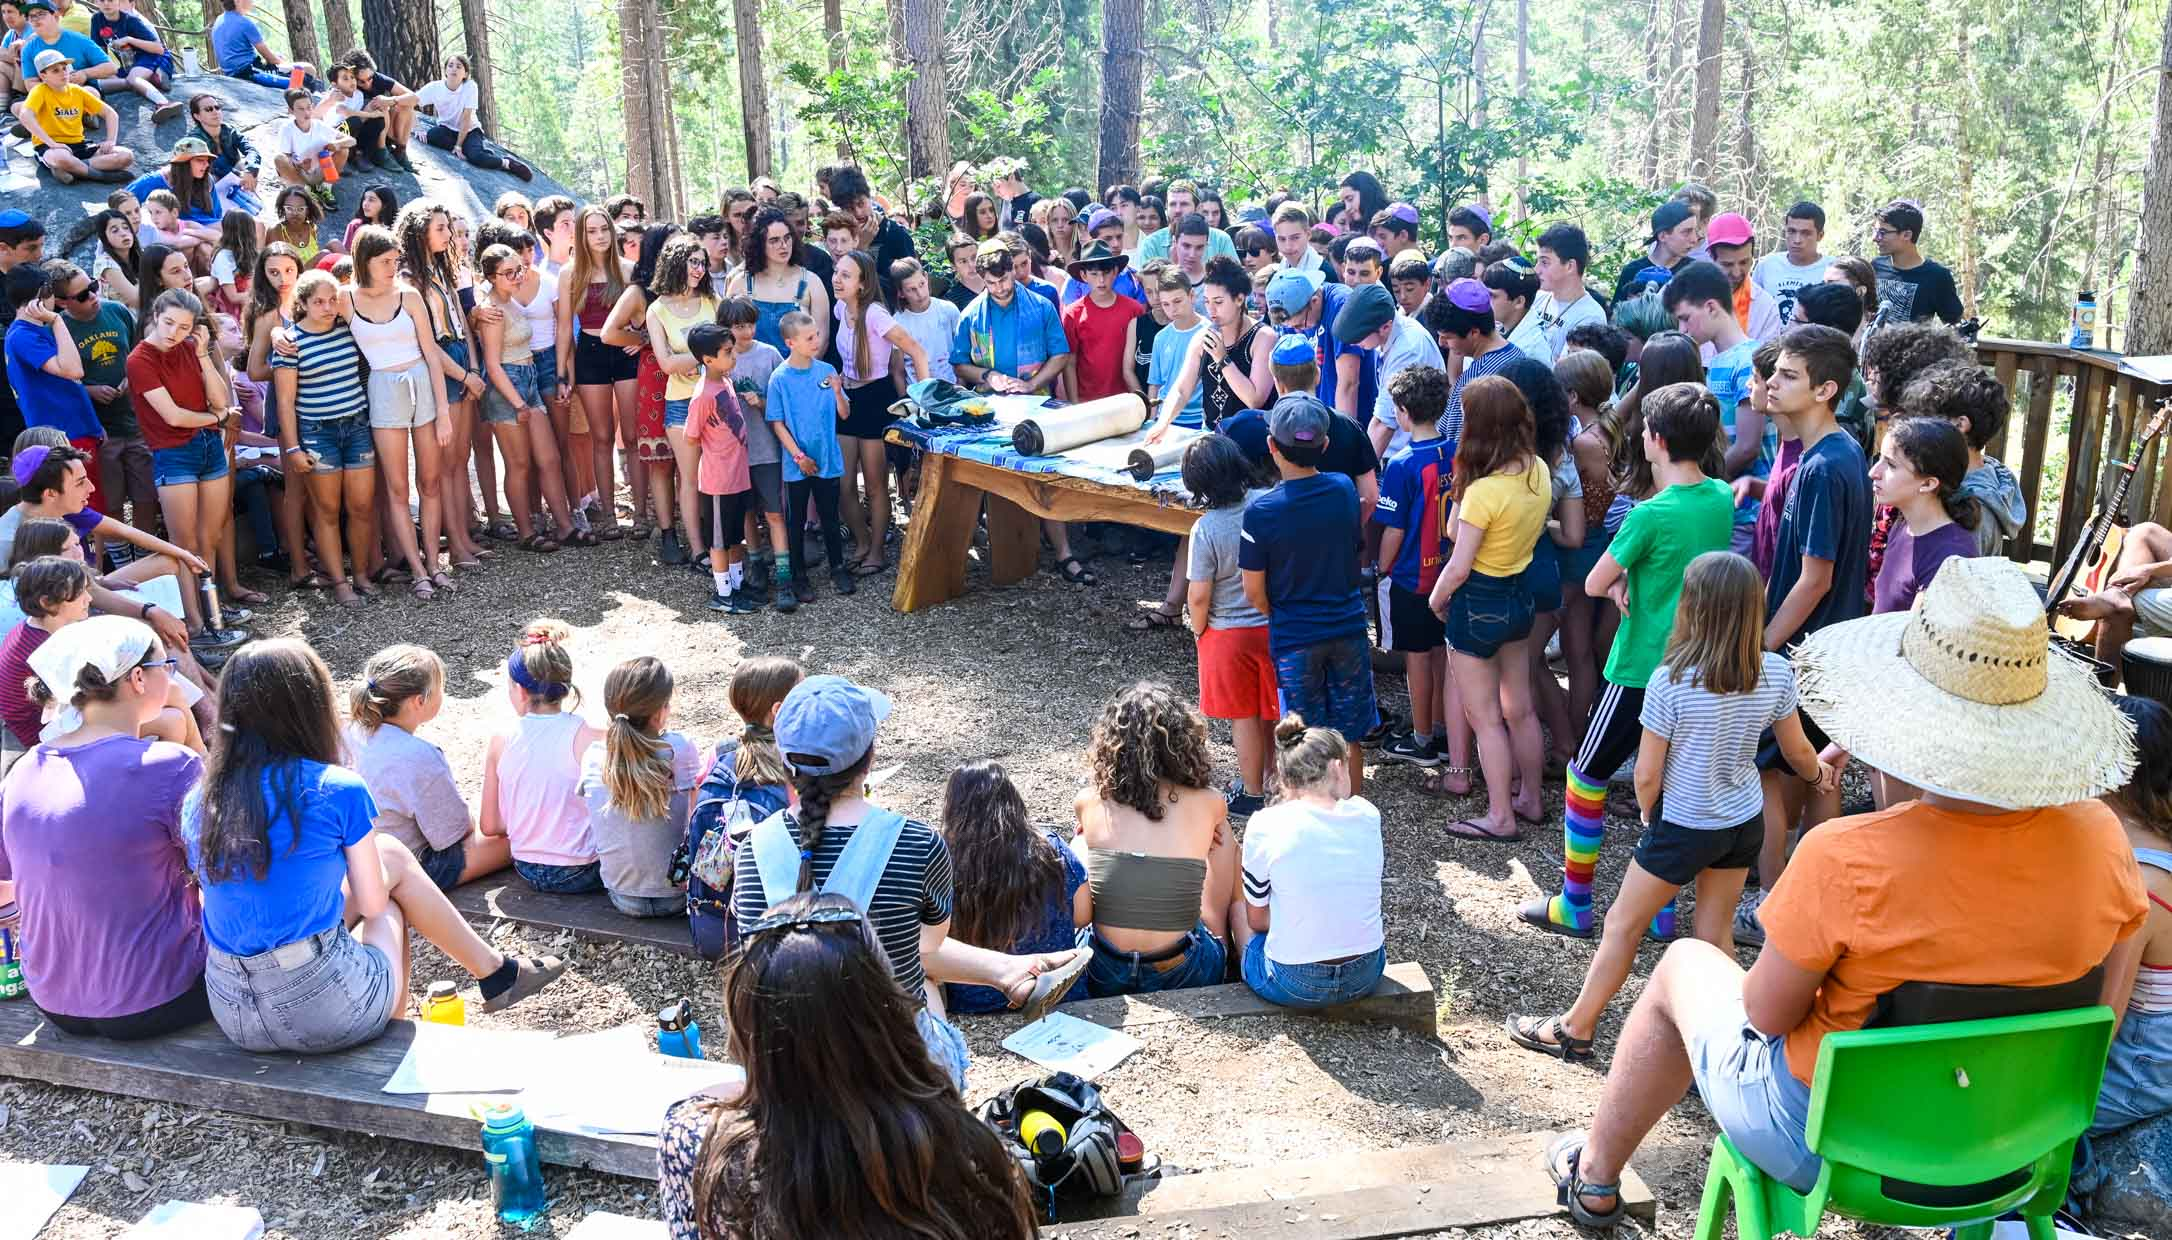 Jewish event at camp